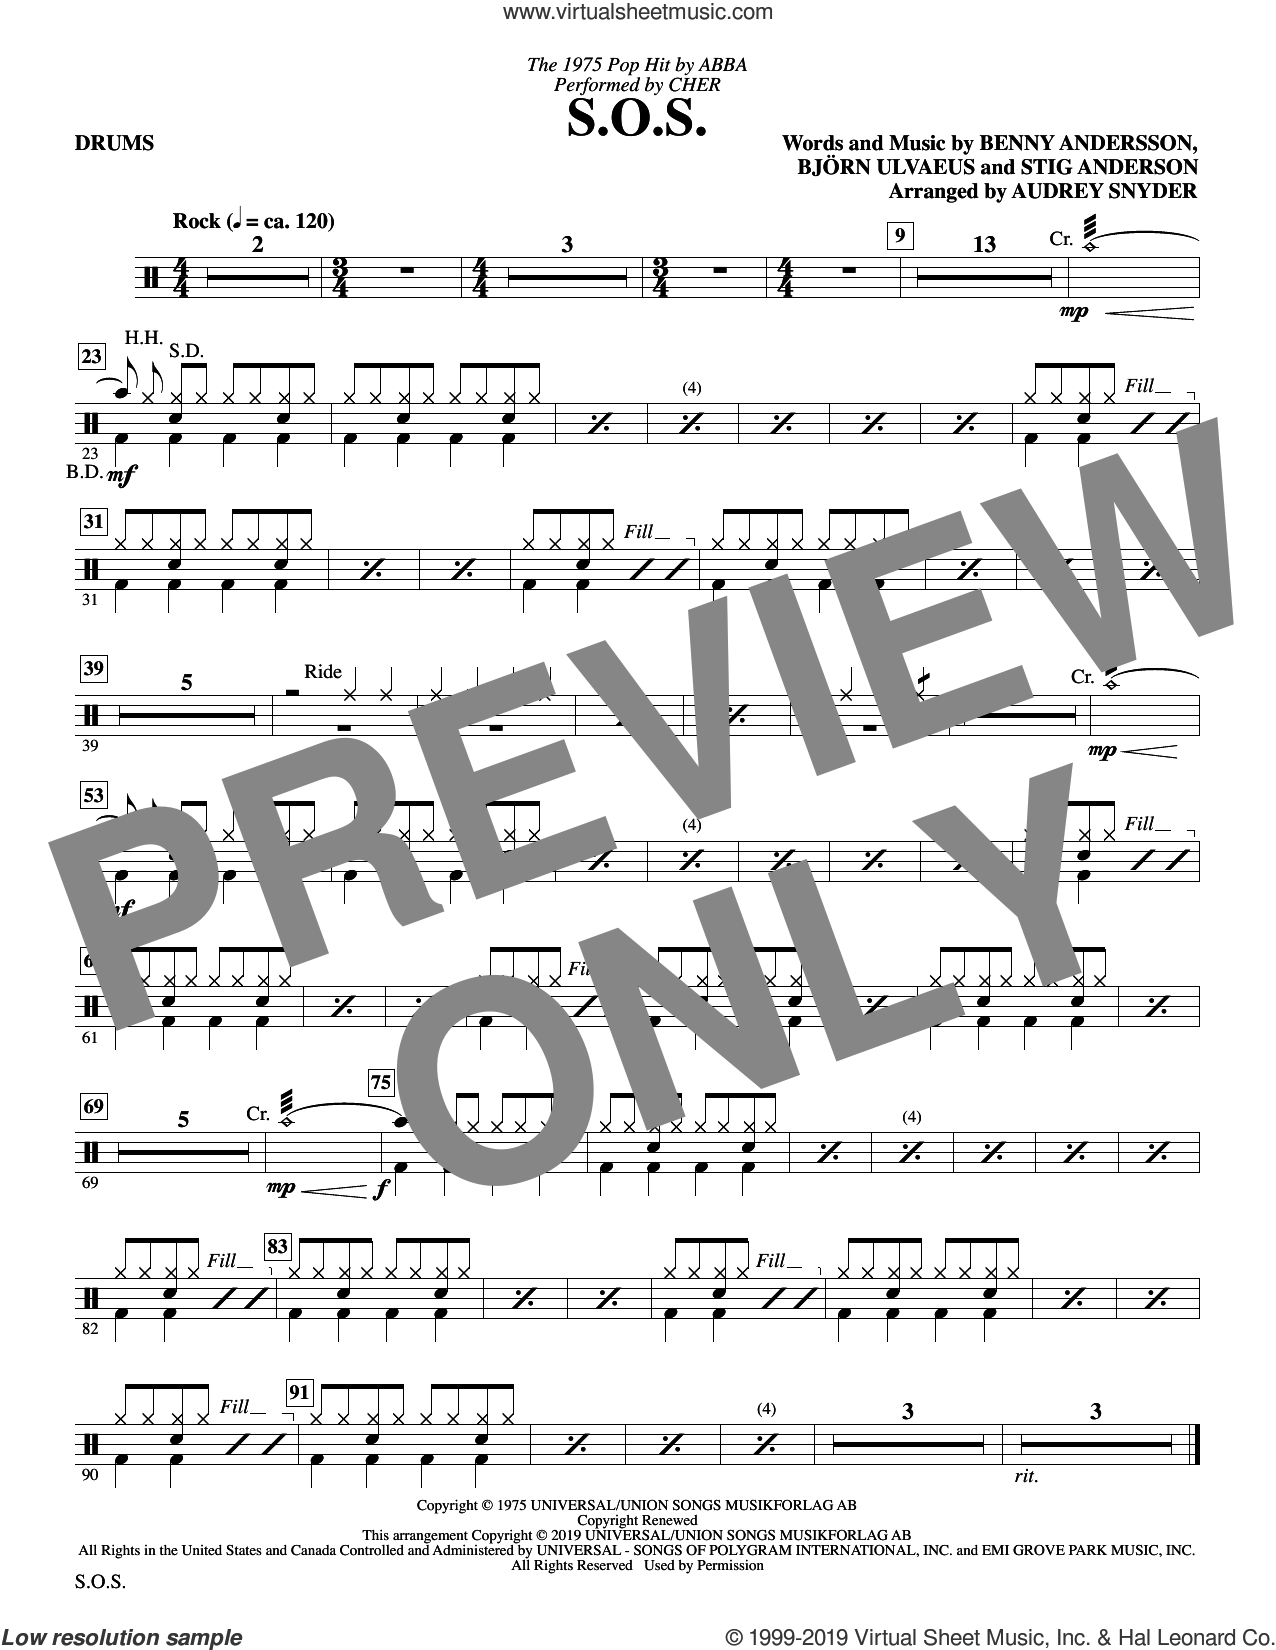 S.O.S. (arr. Audrey Snyder) sheet music for orchestra/band (drums) by Cher, Audrey Snyder, ABBA, Benny Andersson, Bjorn Ulvaeus and Stig Anderson, intermediate skill level